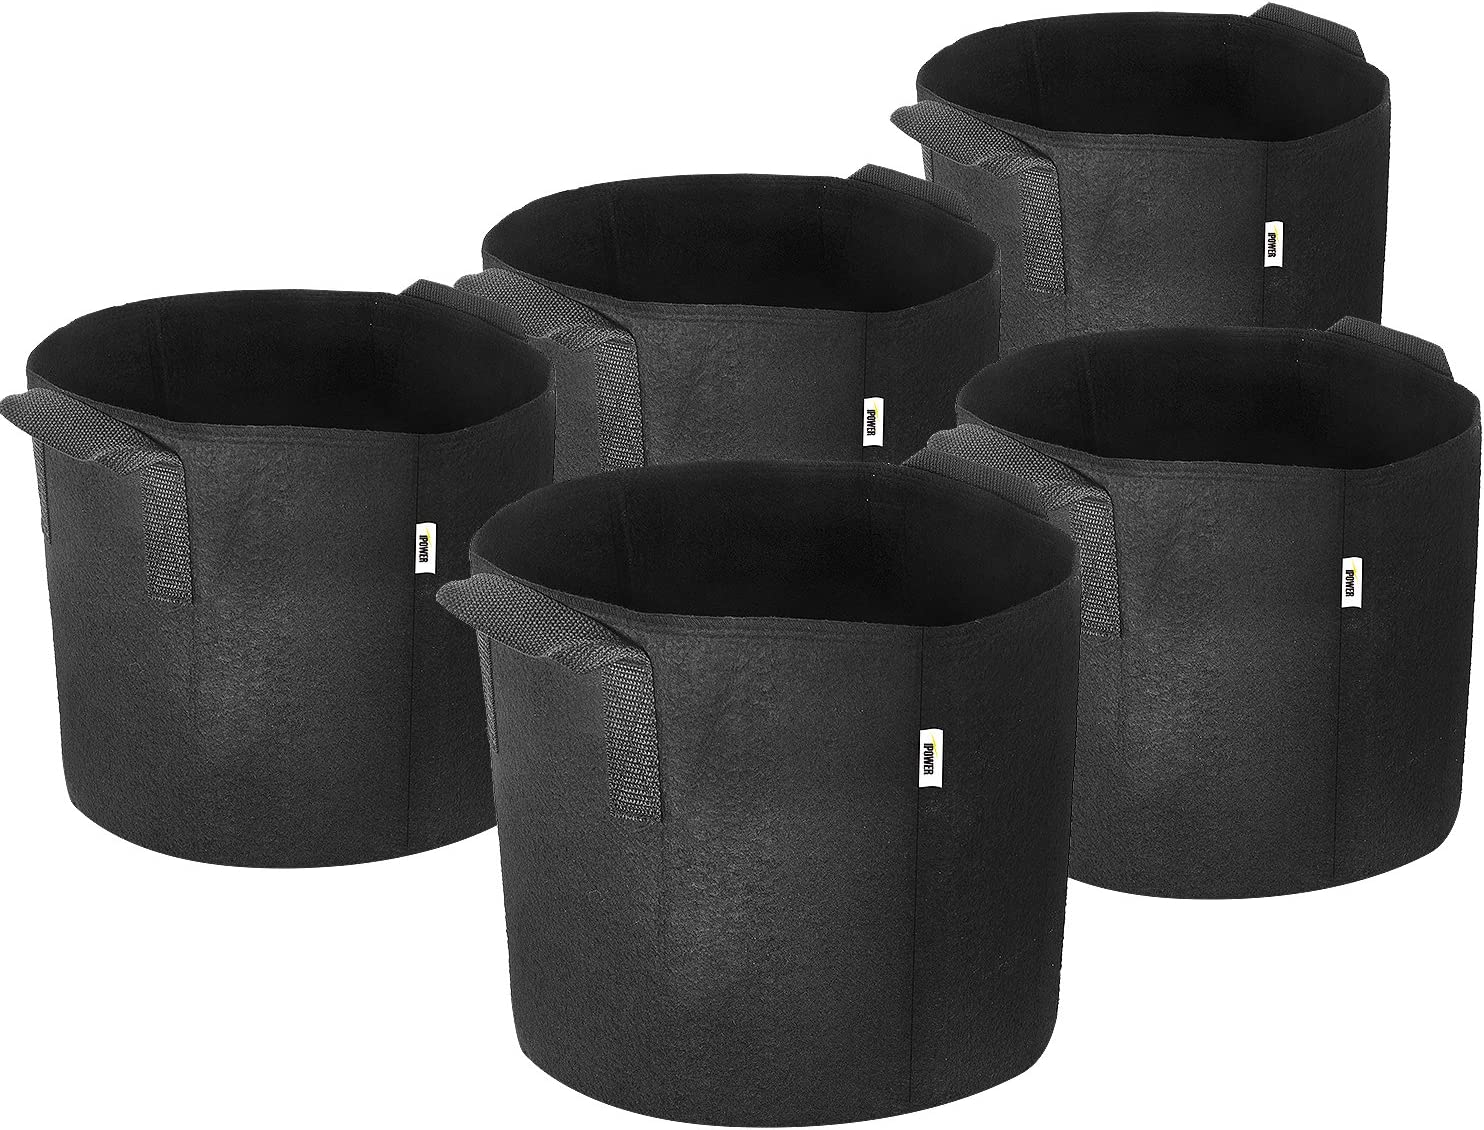 iPower 3-Gallon 5-Pack Grow Bags Fabric Aeration Pots Container with Strap Handles for Nursery Garden and Planting Black